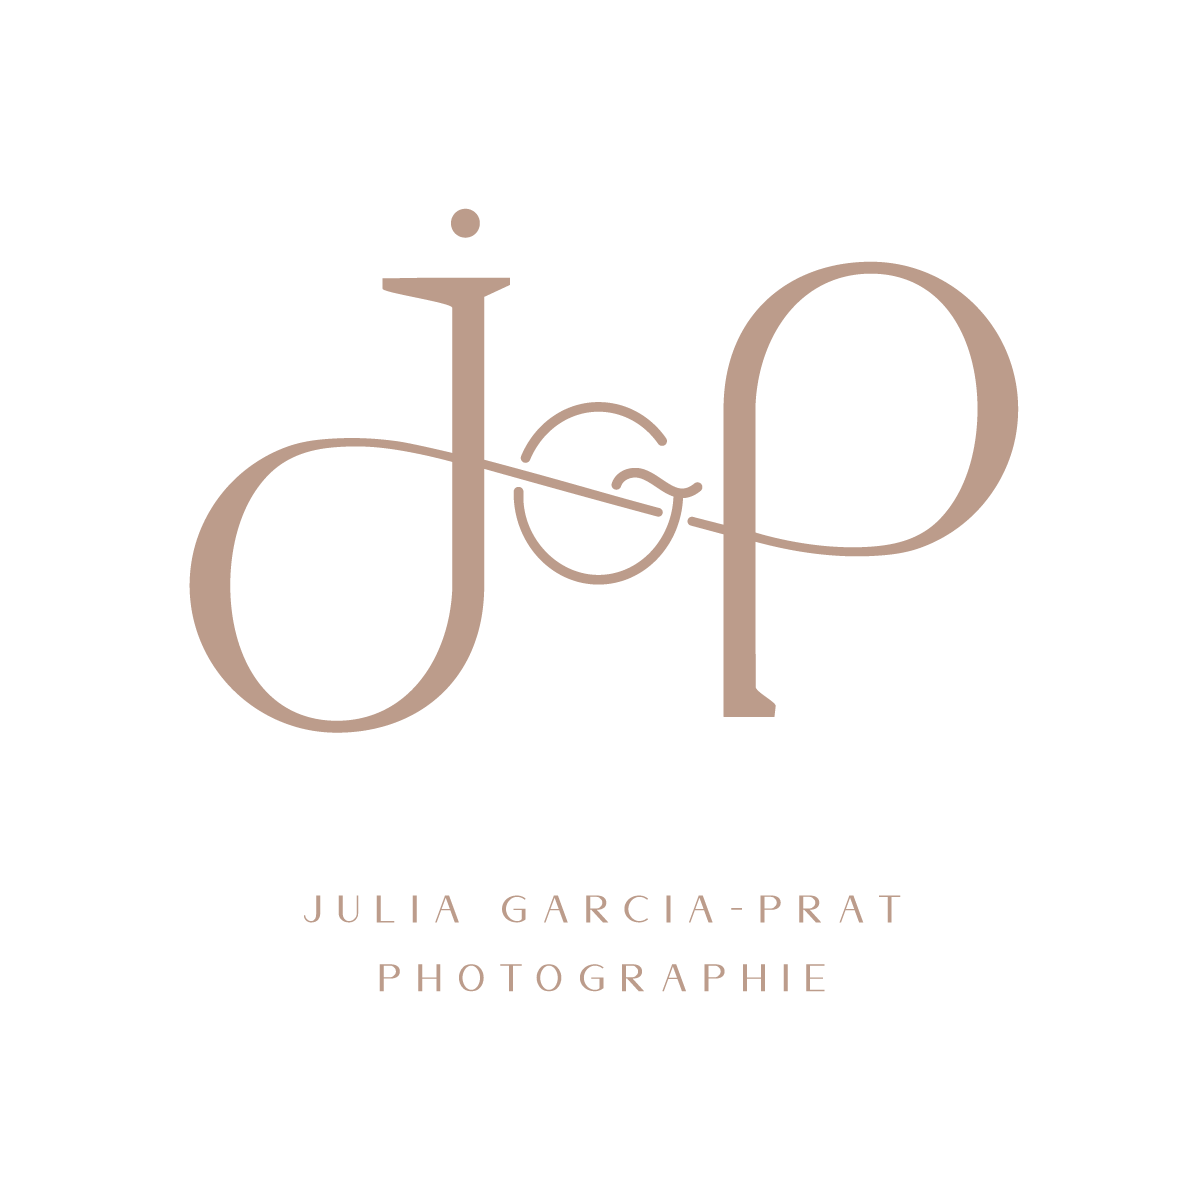 Julia Garcia-Prat Photography